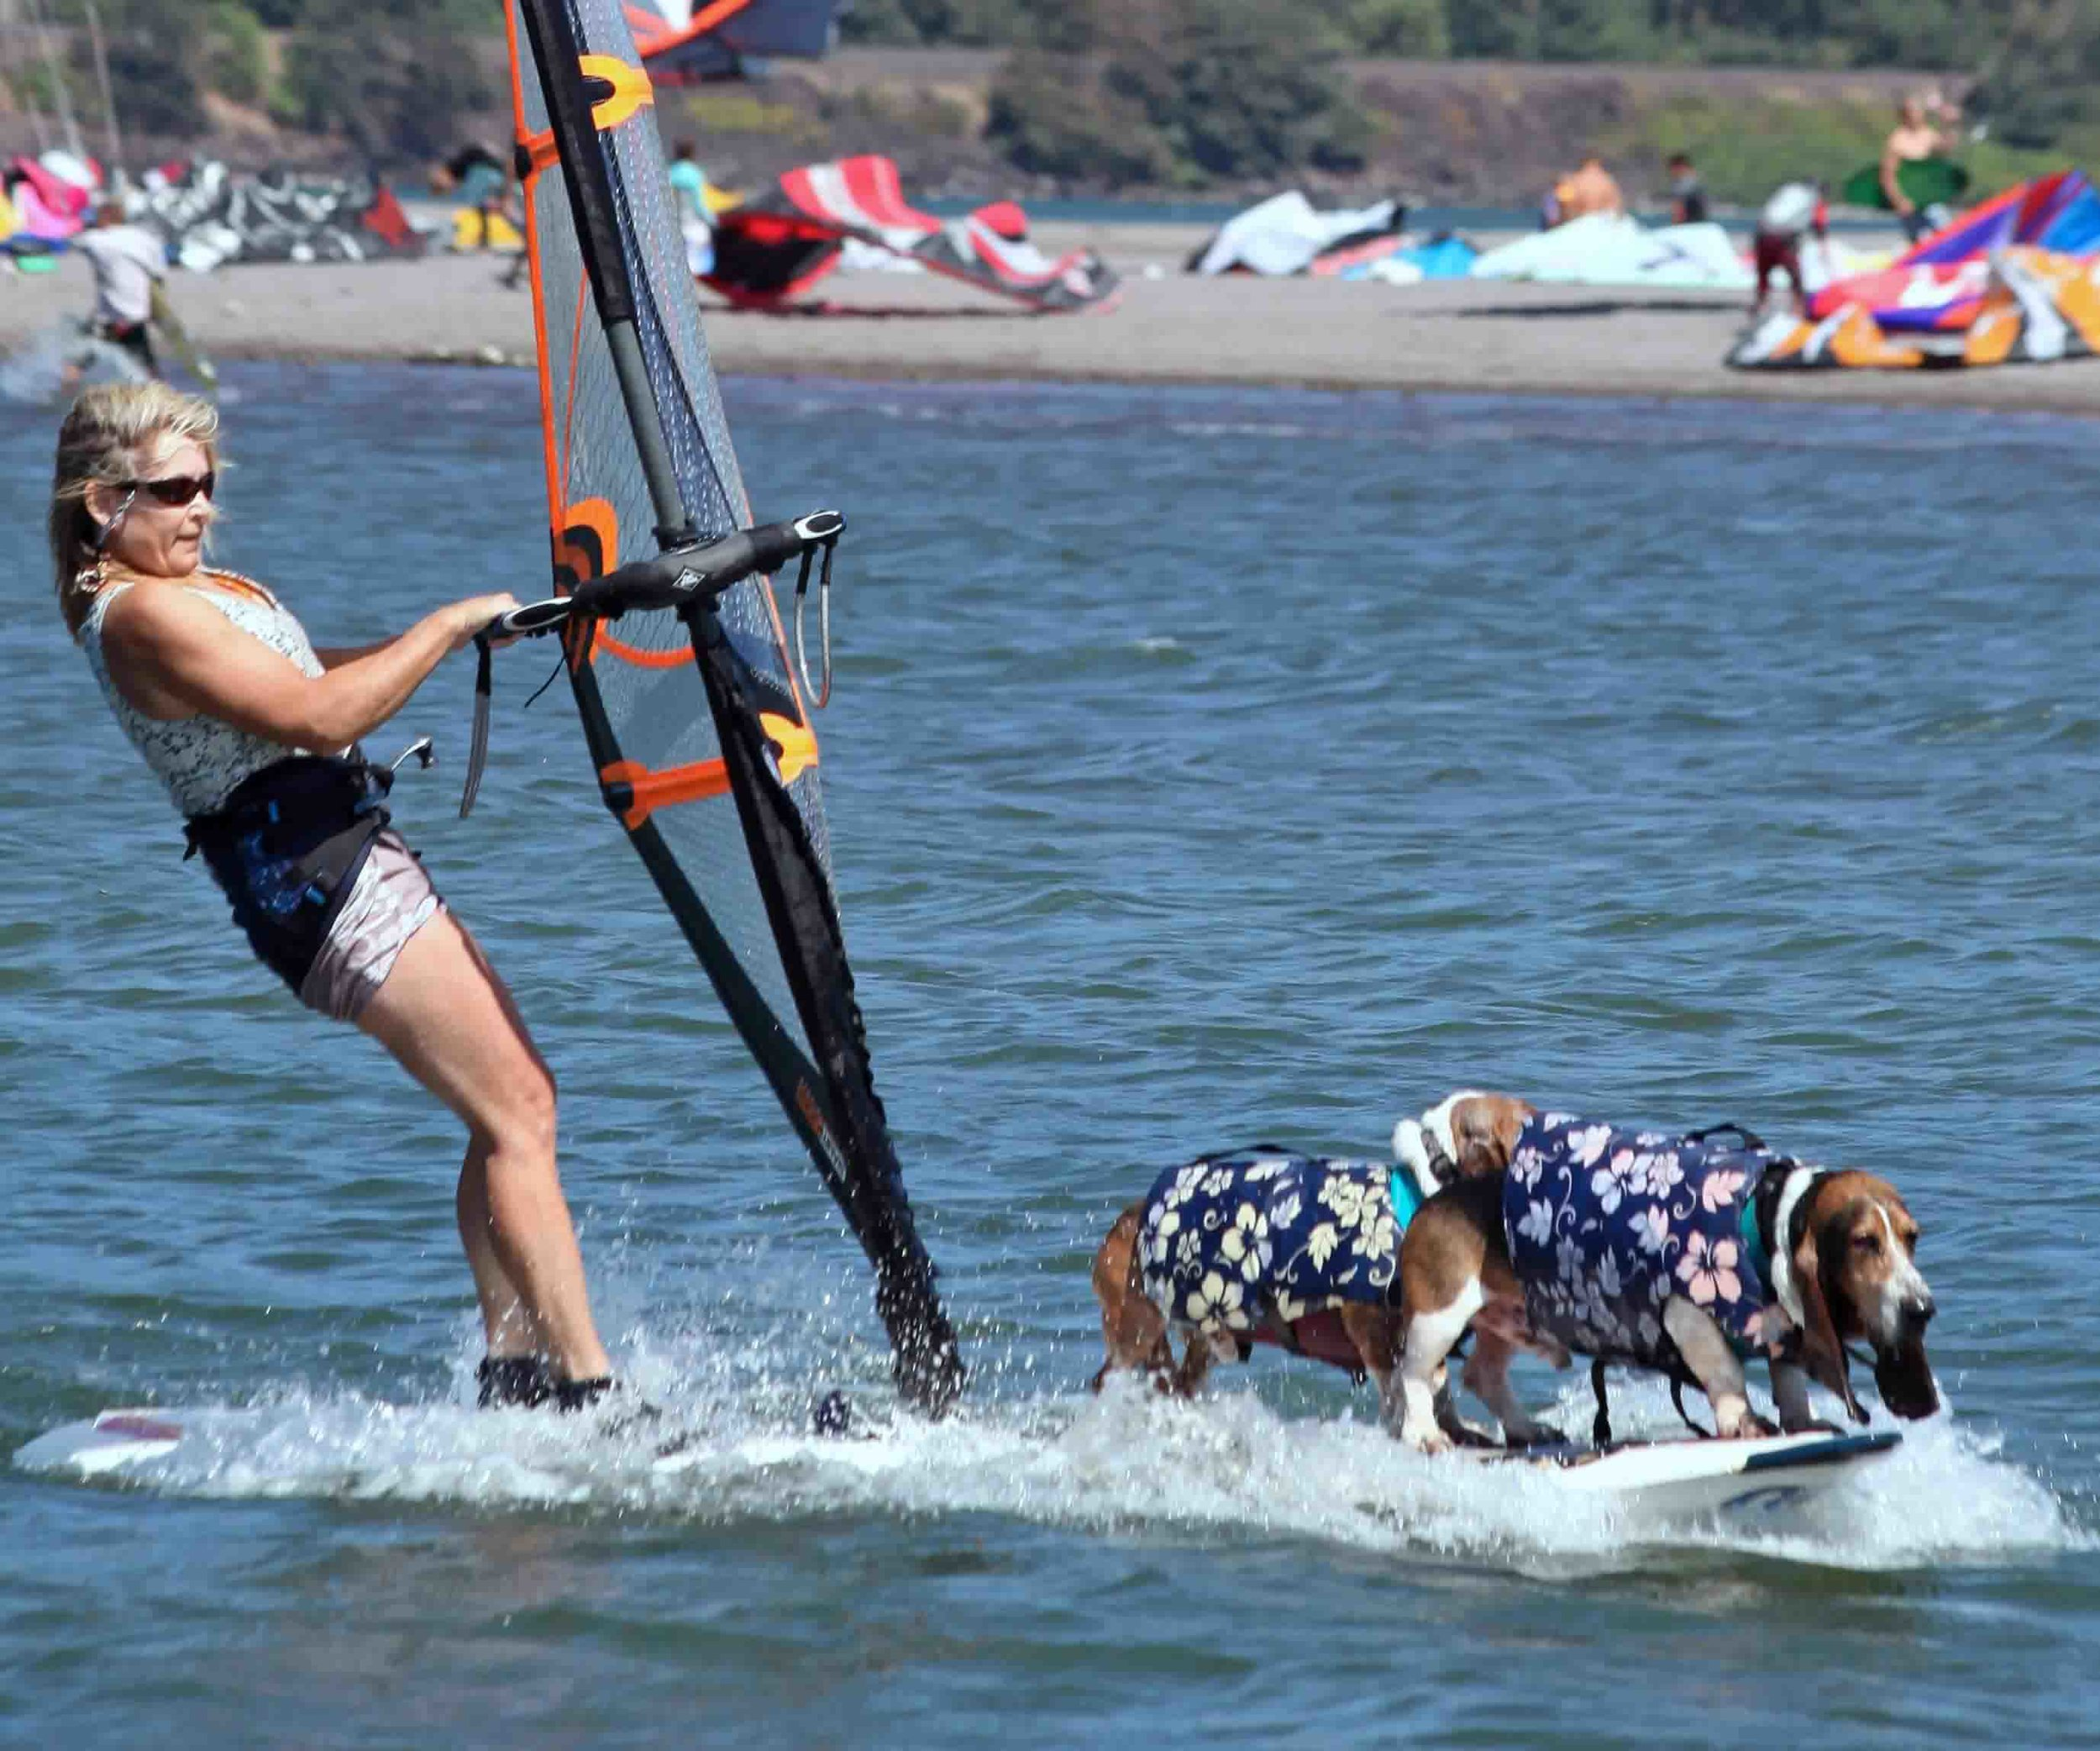 Double dog windsurf day. Elvis, Dude and I at Hood River Event Site, circa 2009. Photo: (c) Barb Ayers, DogDiary.org